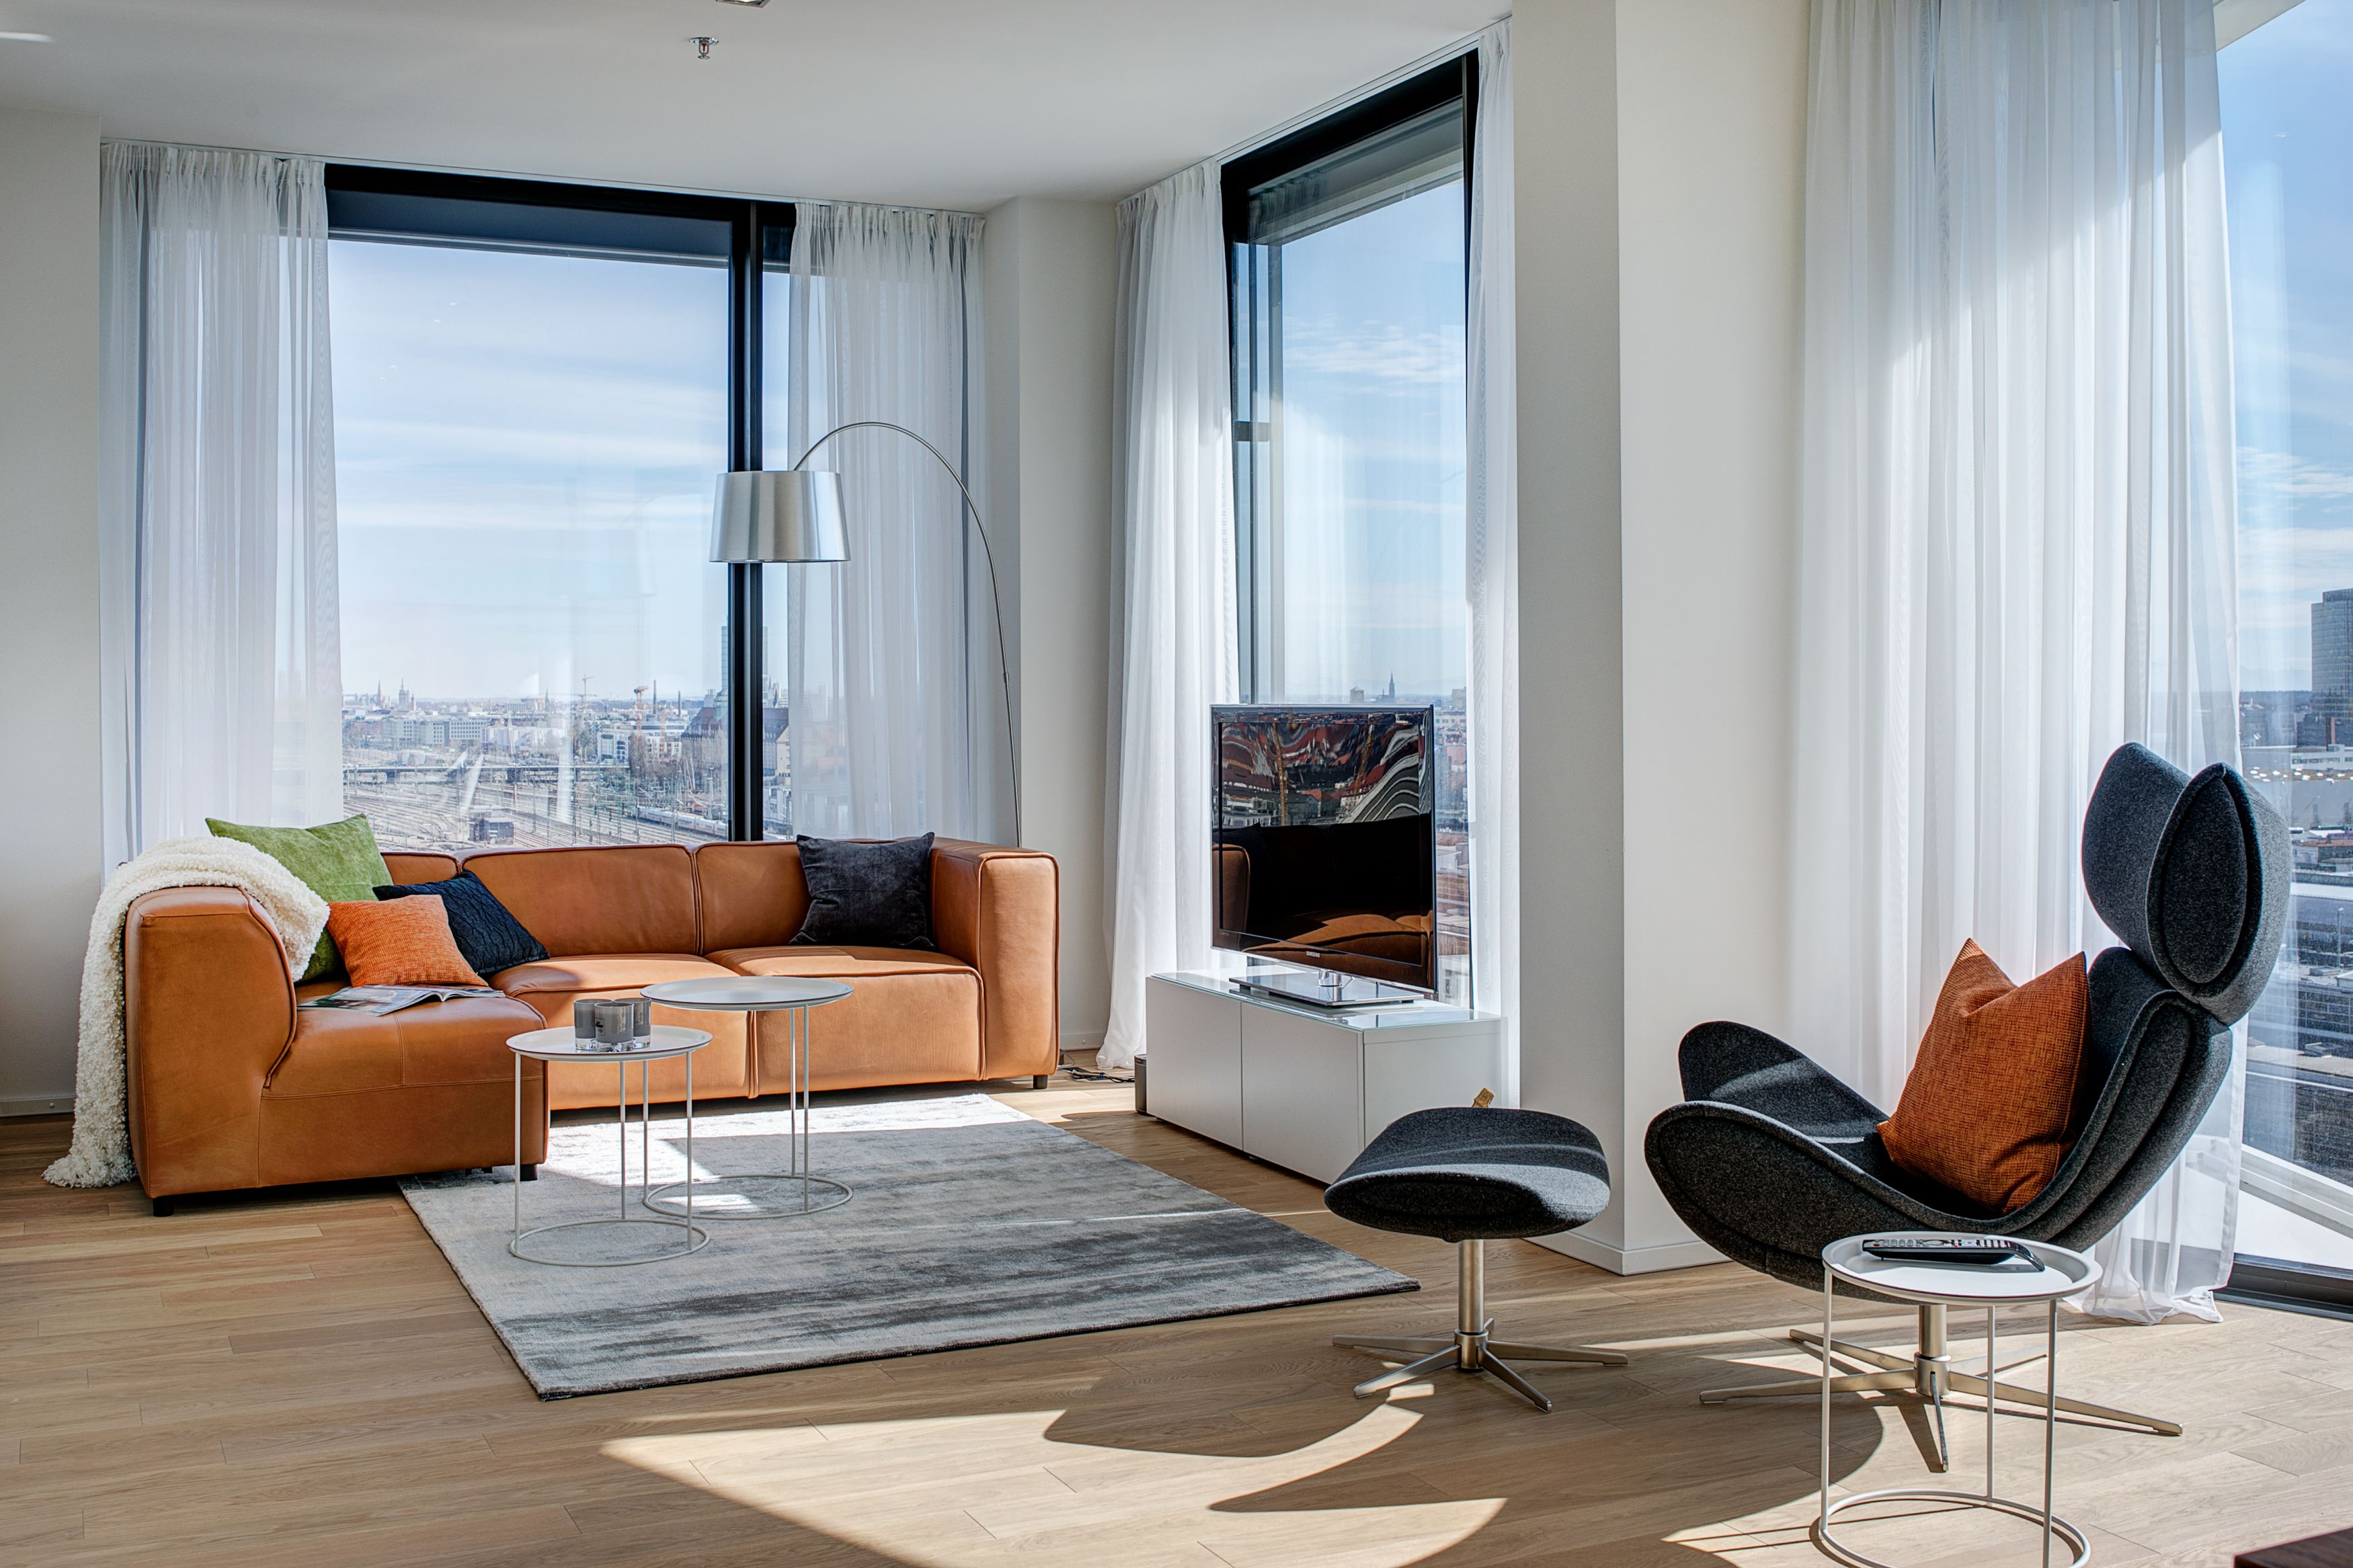 Great Floor To Ceiling Windows And Modern Designer Furniture Set This Living Room  Apart